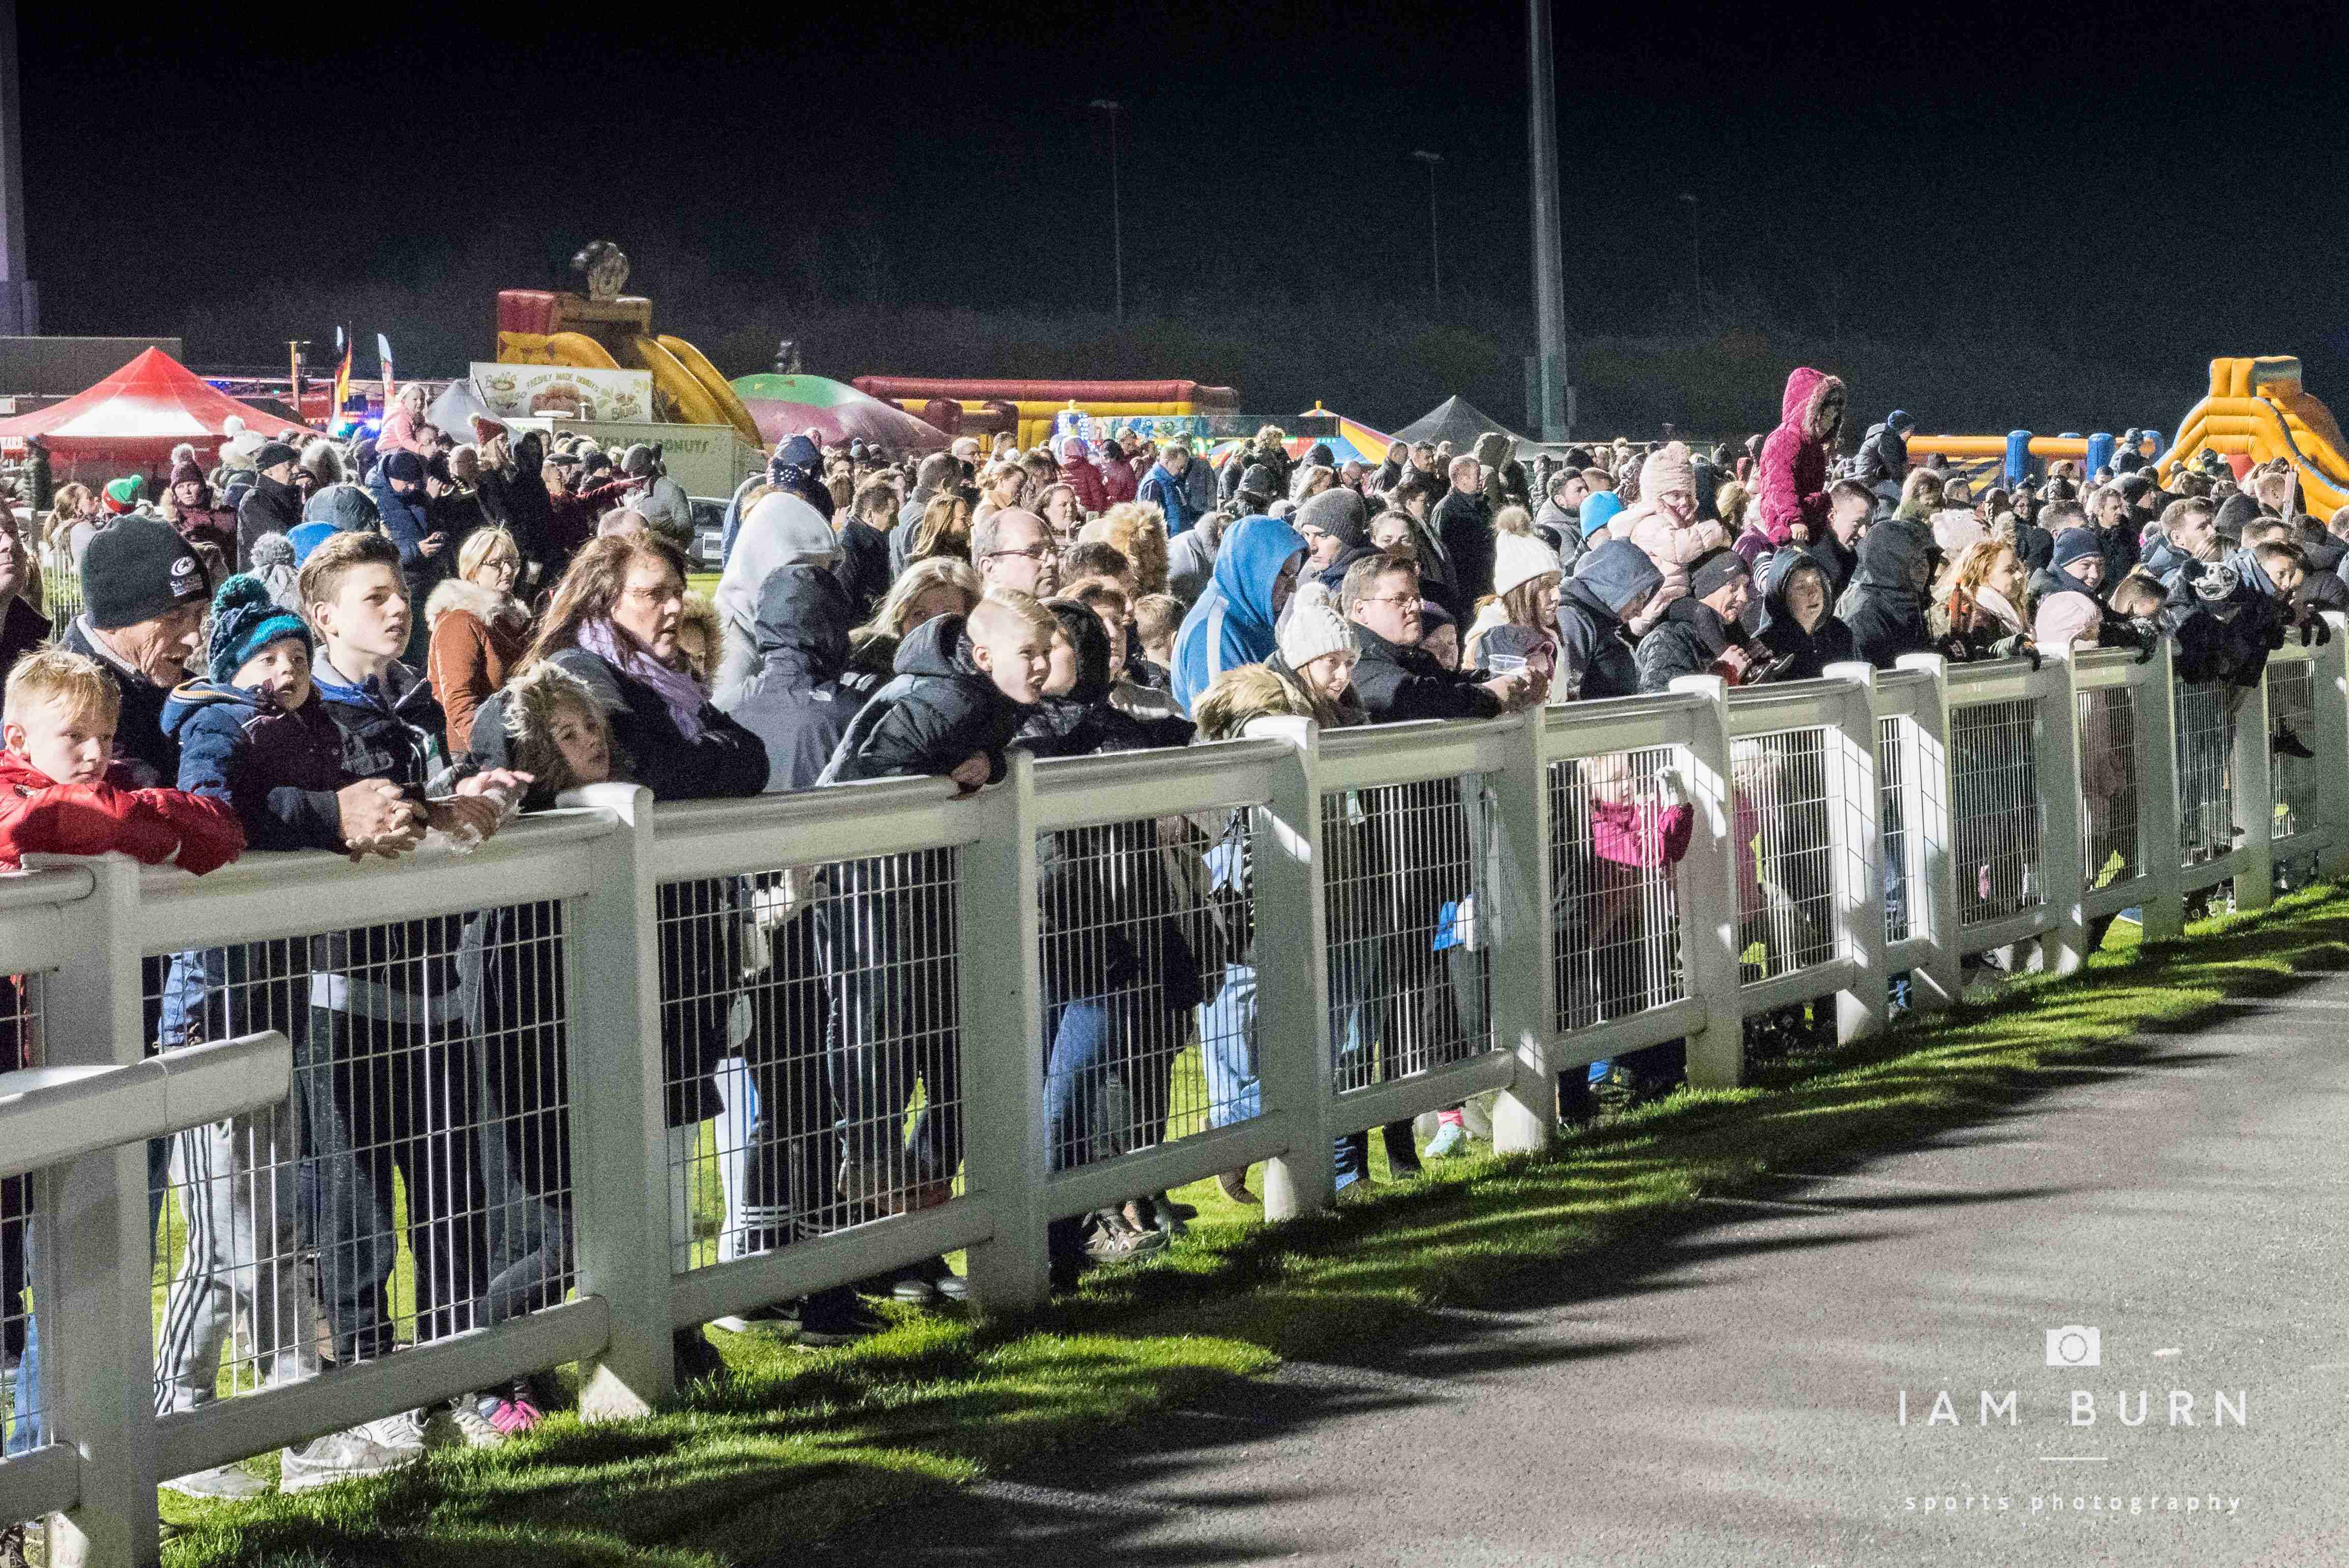 Crowd at the Racecourse